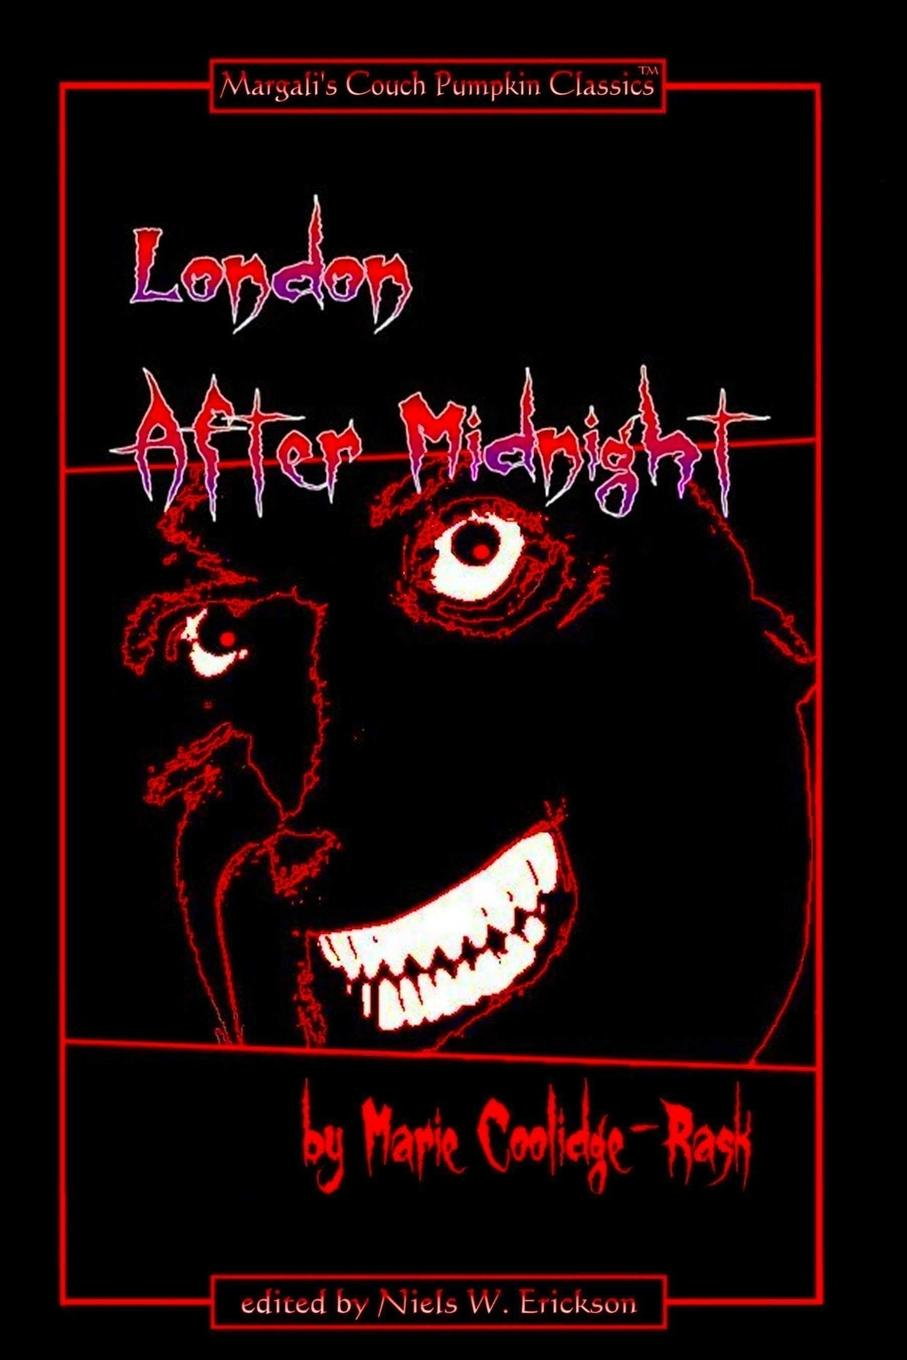 N.W. Erickson, Marie Coolidge-Rask London After Midnight - Paperback Ed. walking after midnight